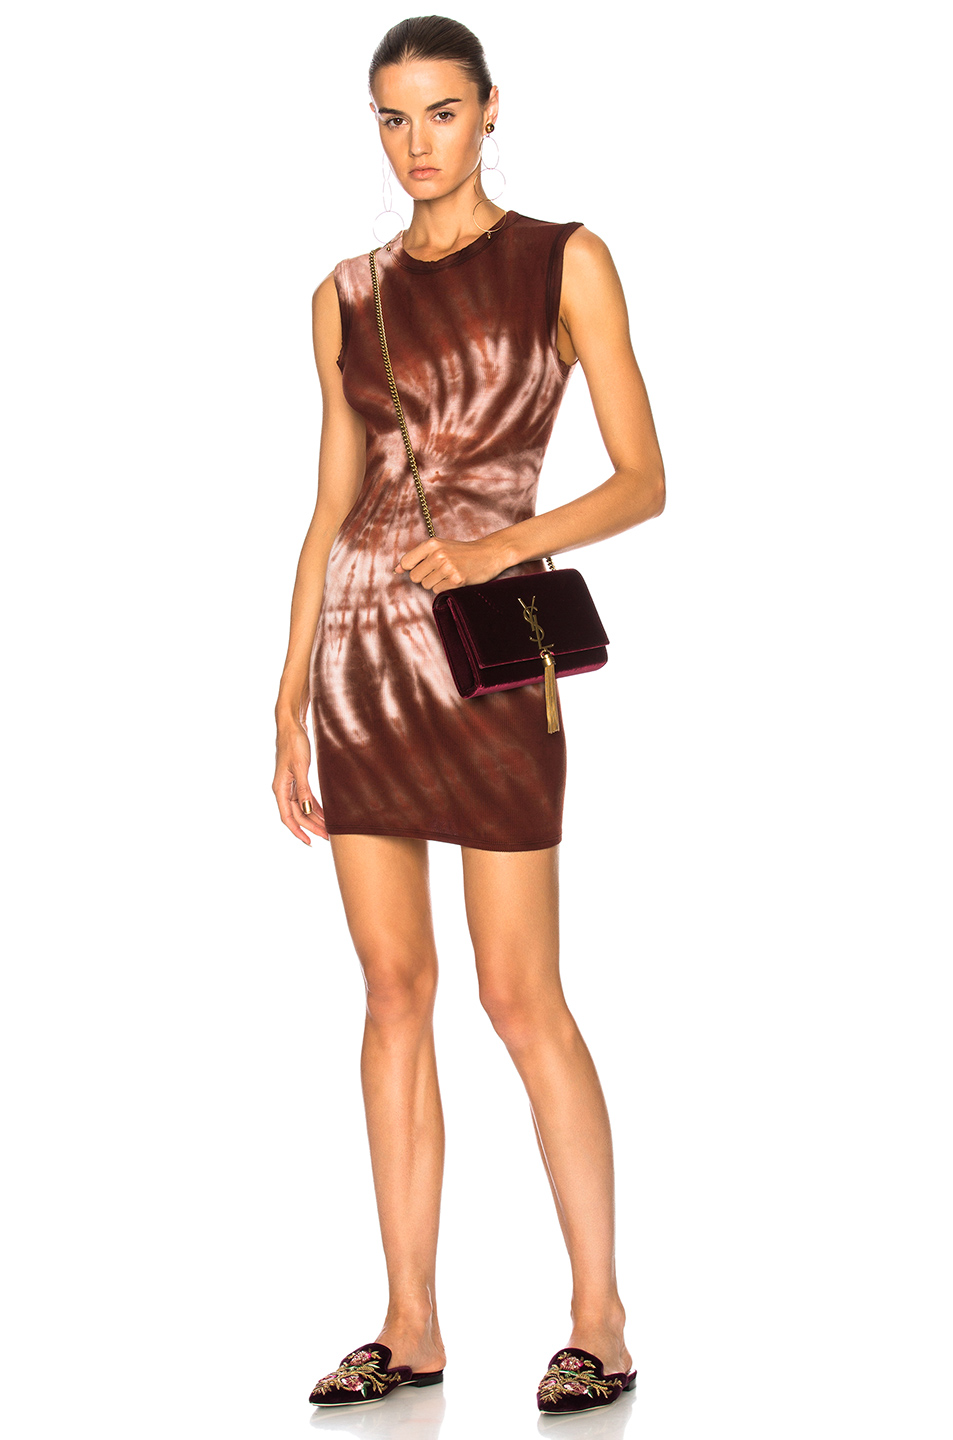 Enza Costa for FWRD Rib Sleeveless Mini Dress in Brown,Ombre & Tie Dye,Red